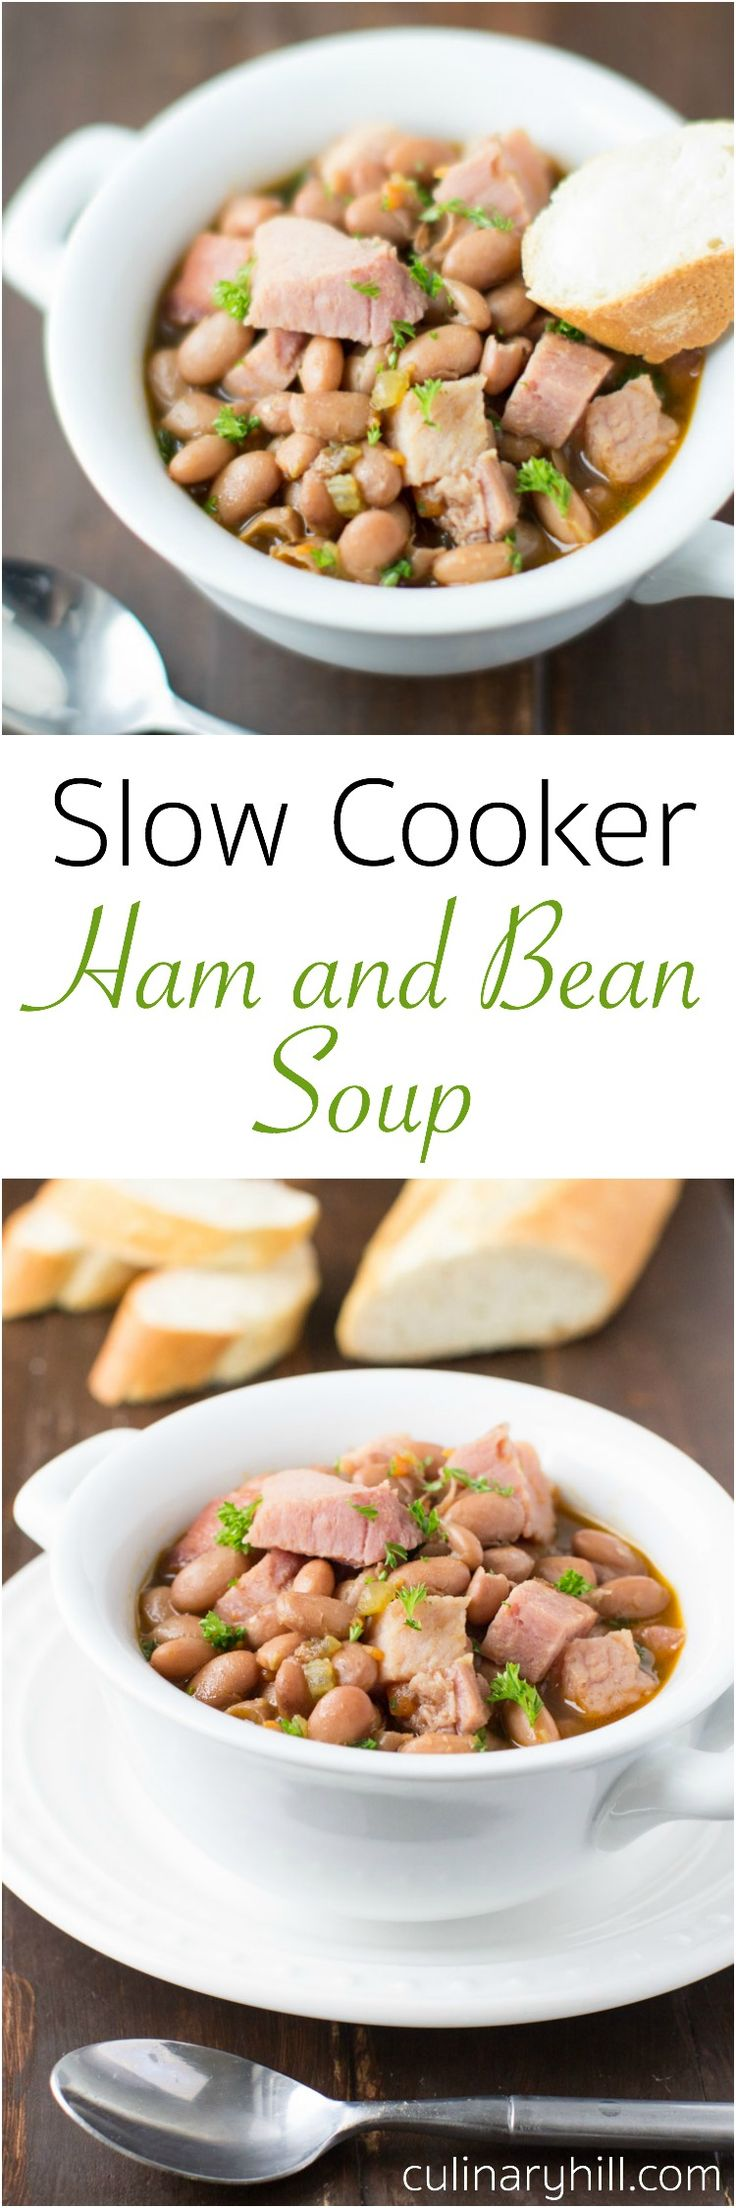 A simple delicious way to put your leftover ham bones to work Slow Cooker Ham and Bean Soup is full of vegetables and pinto beans too. Naturally gluten free!